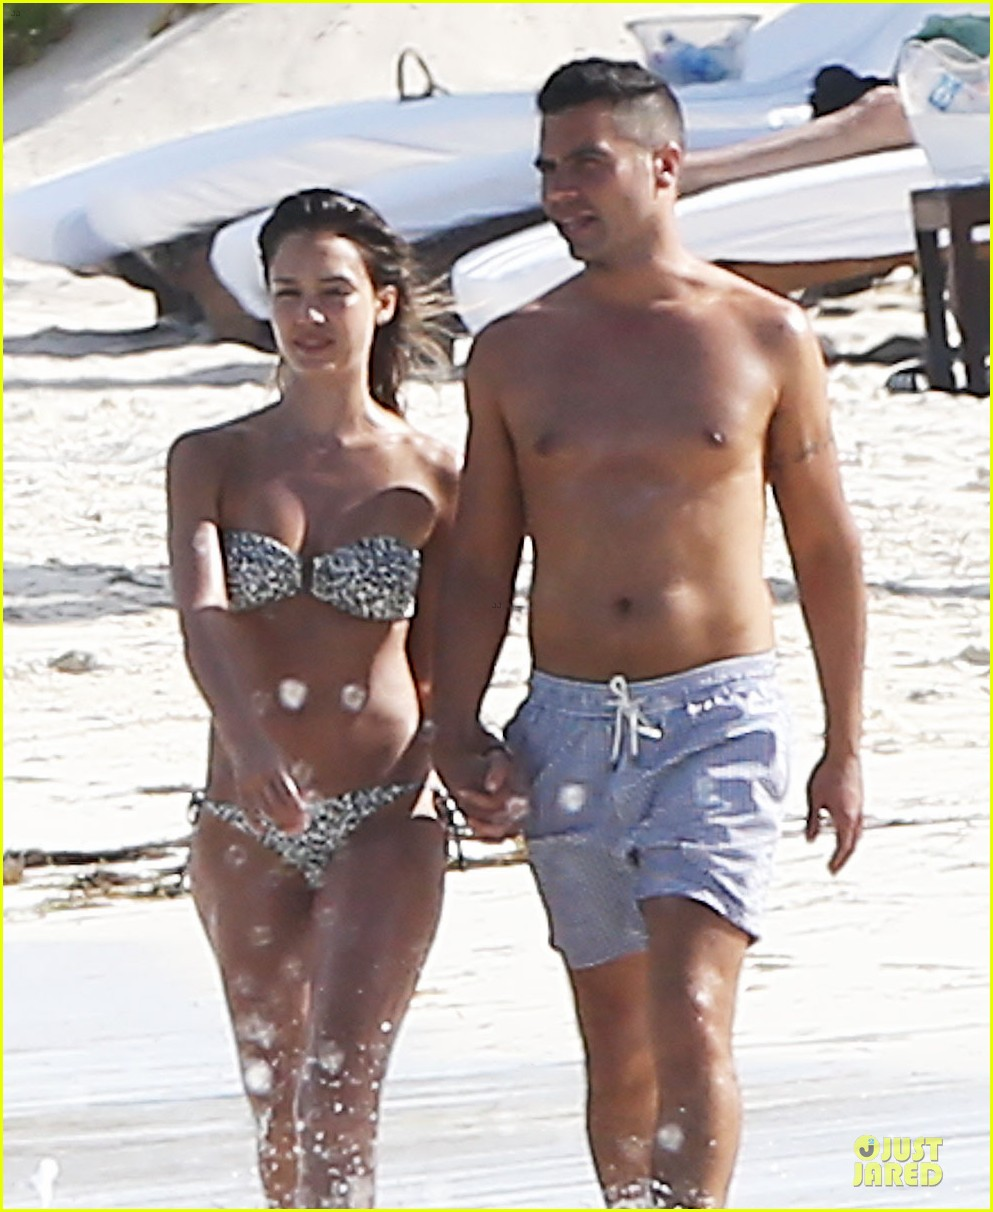 New Best Impressive Pics: Bikini-Clad Jessica Alba & Shirtless Cash Warren Show Off